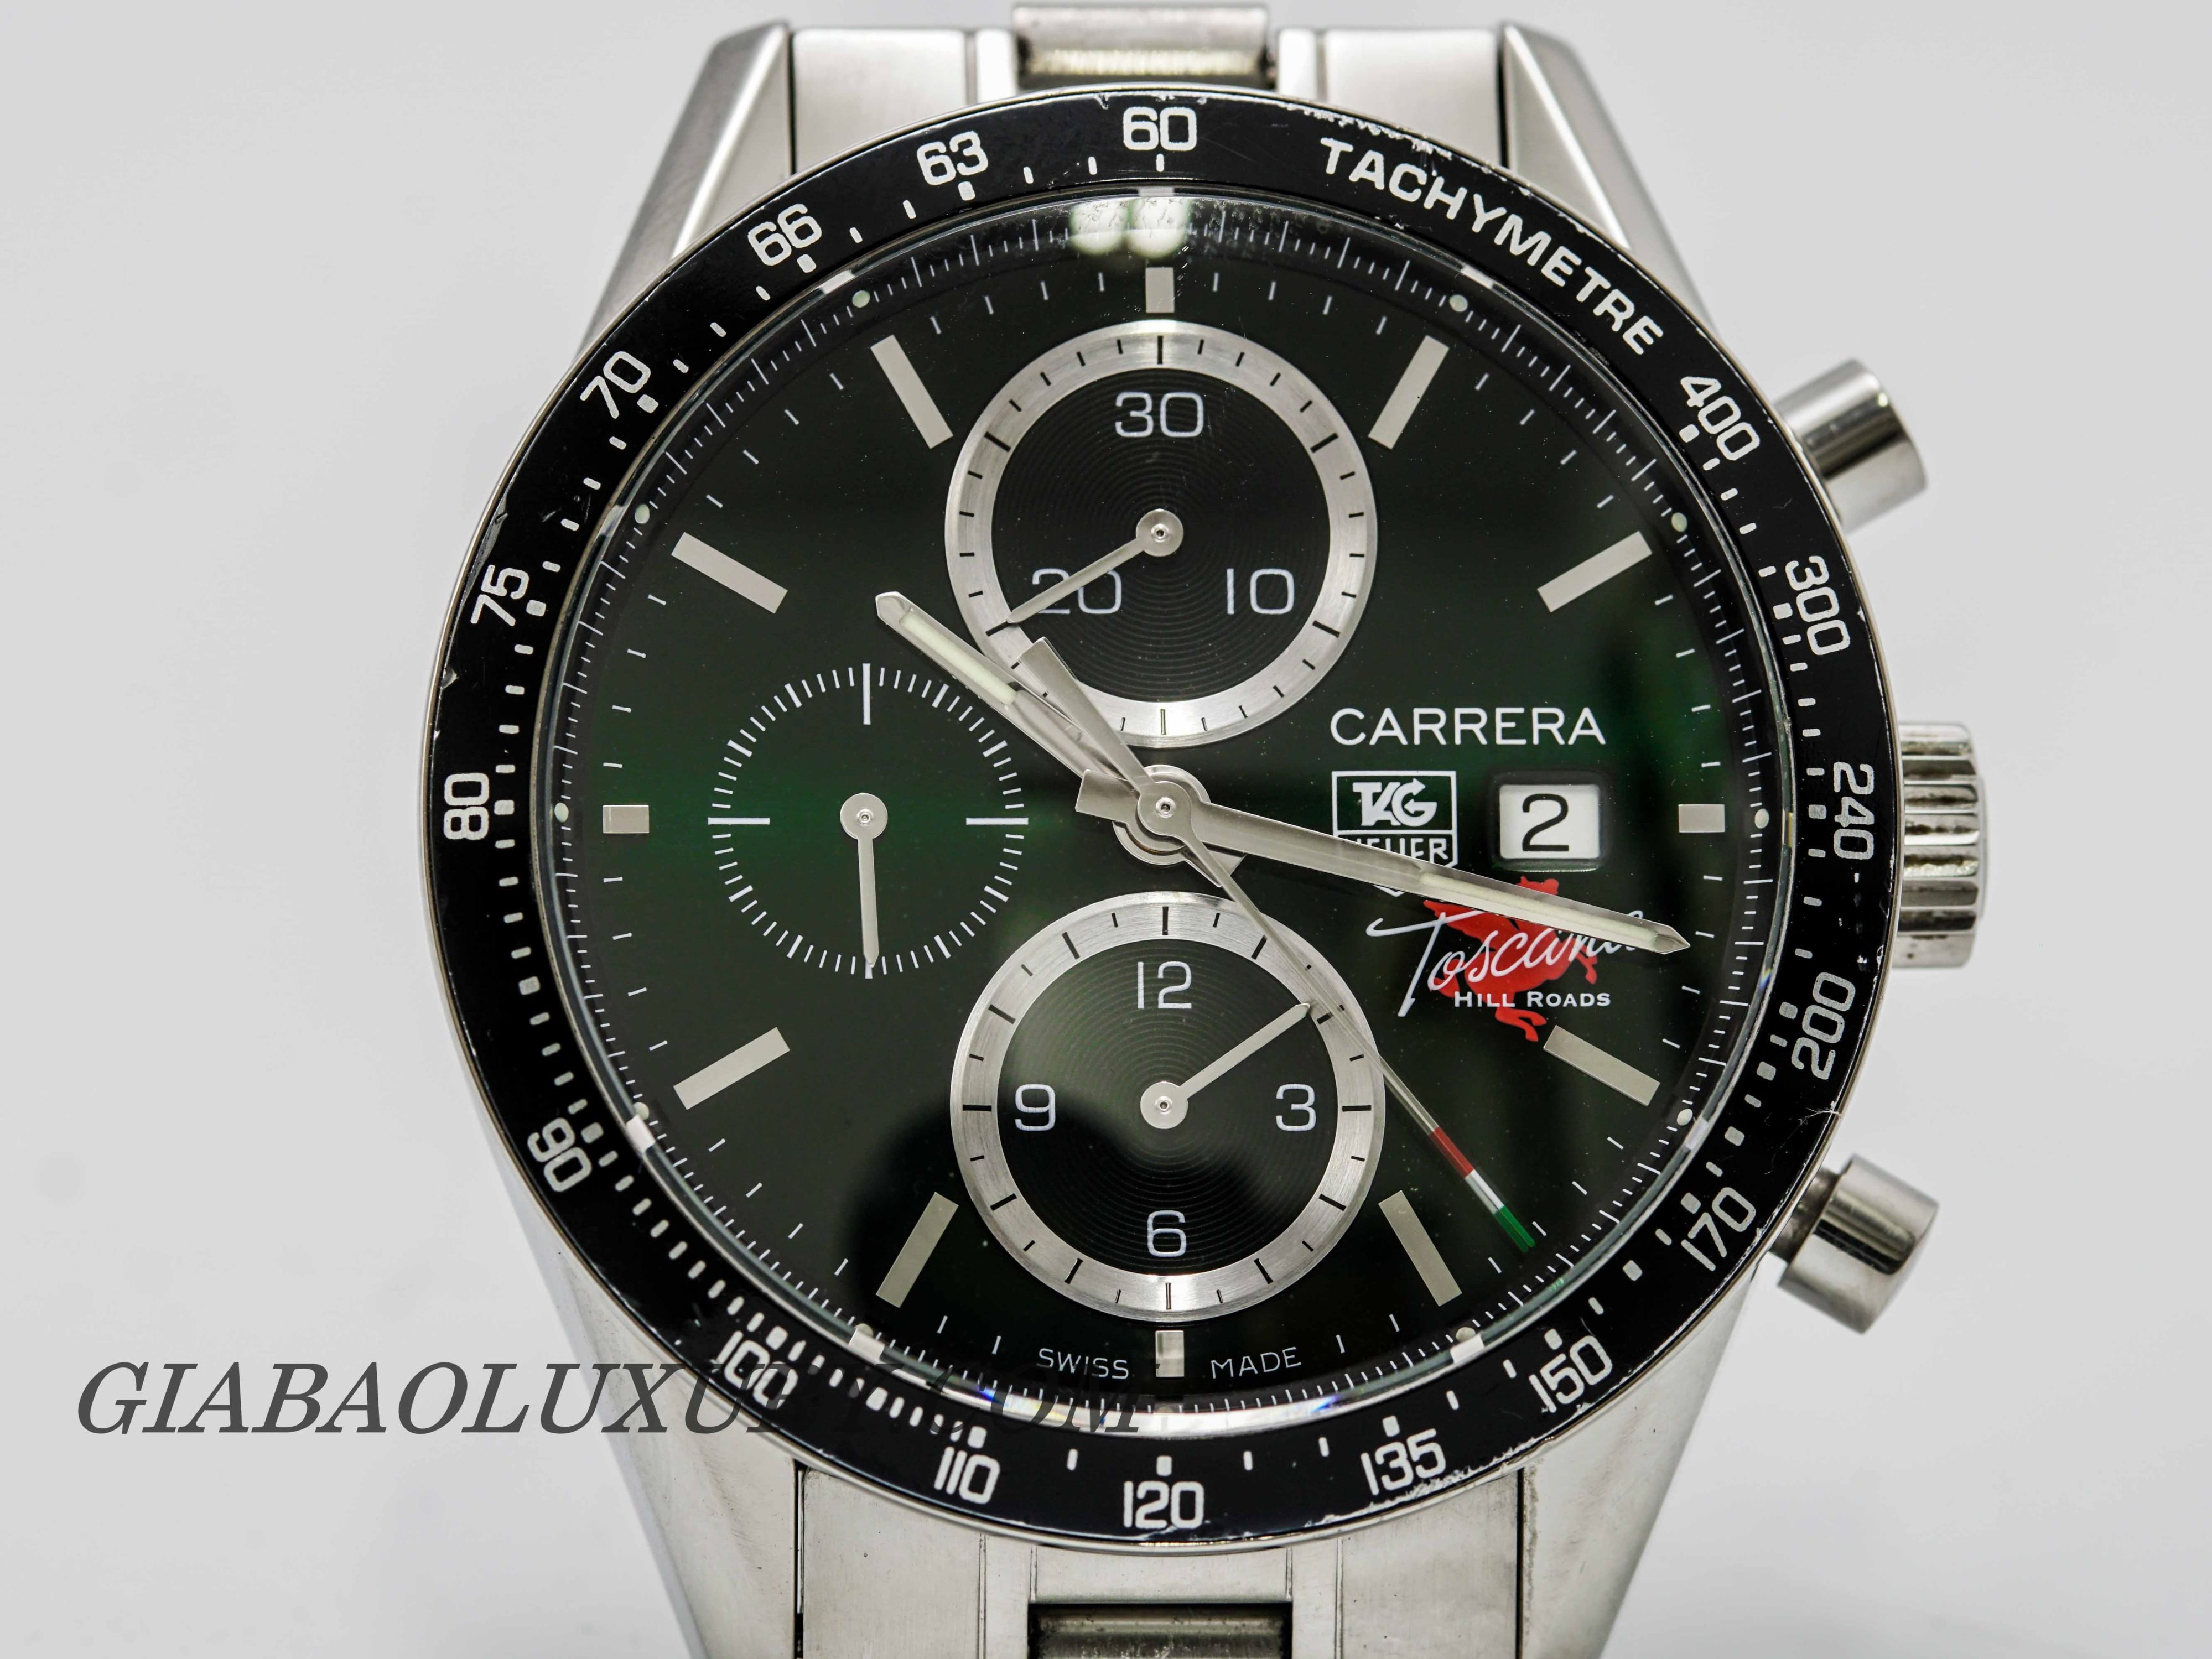 Đồng Hồ Tag Heuer Japan Toscana Hill Road Limited 577 Pieces